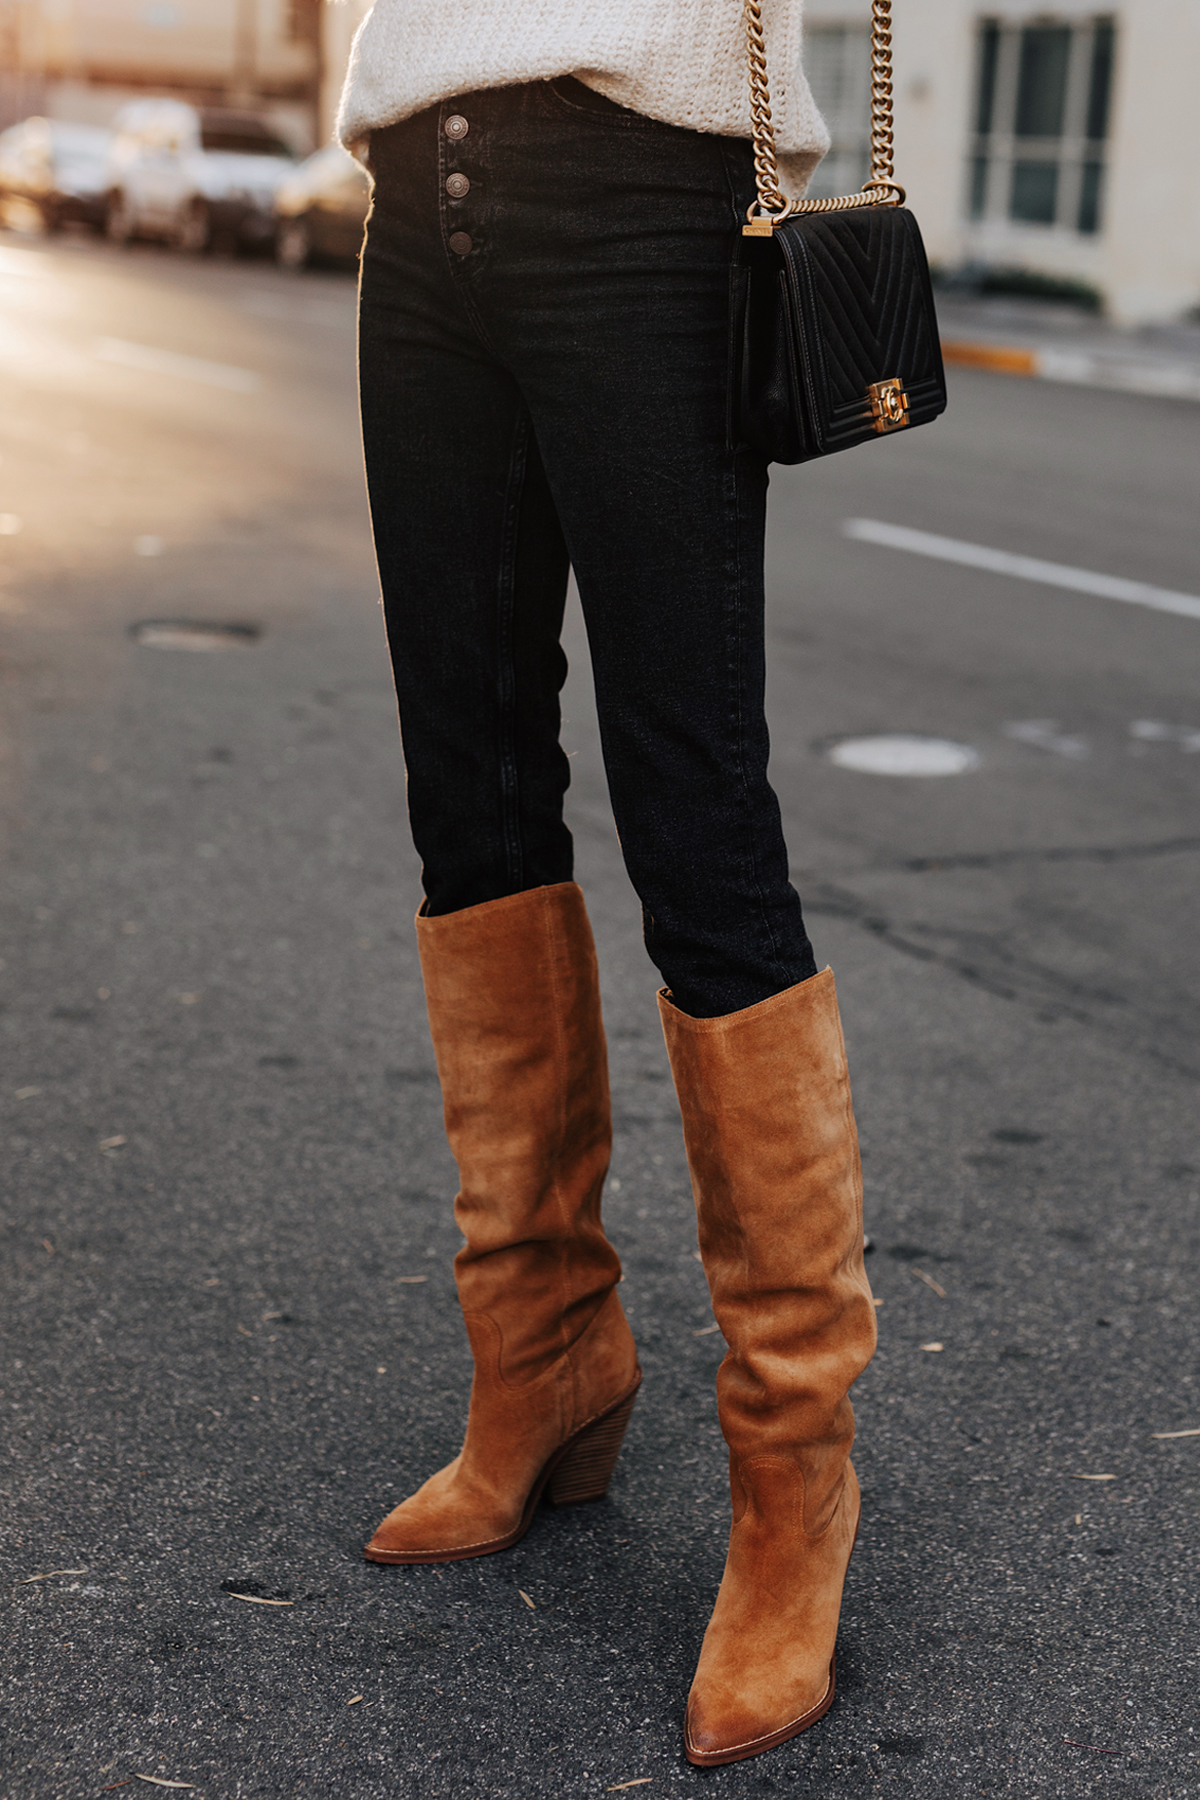 Fashion Jackson Wearing Abercrombie Black Jeans Sam Edelman Indigo Pointed Toe Knee High Boot